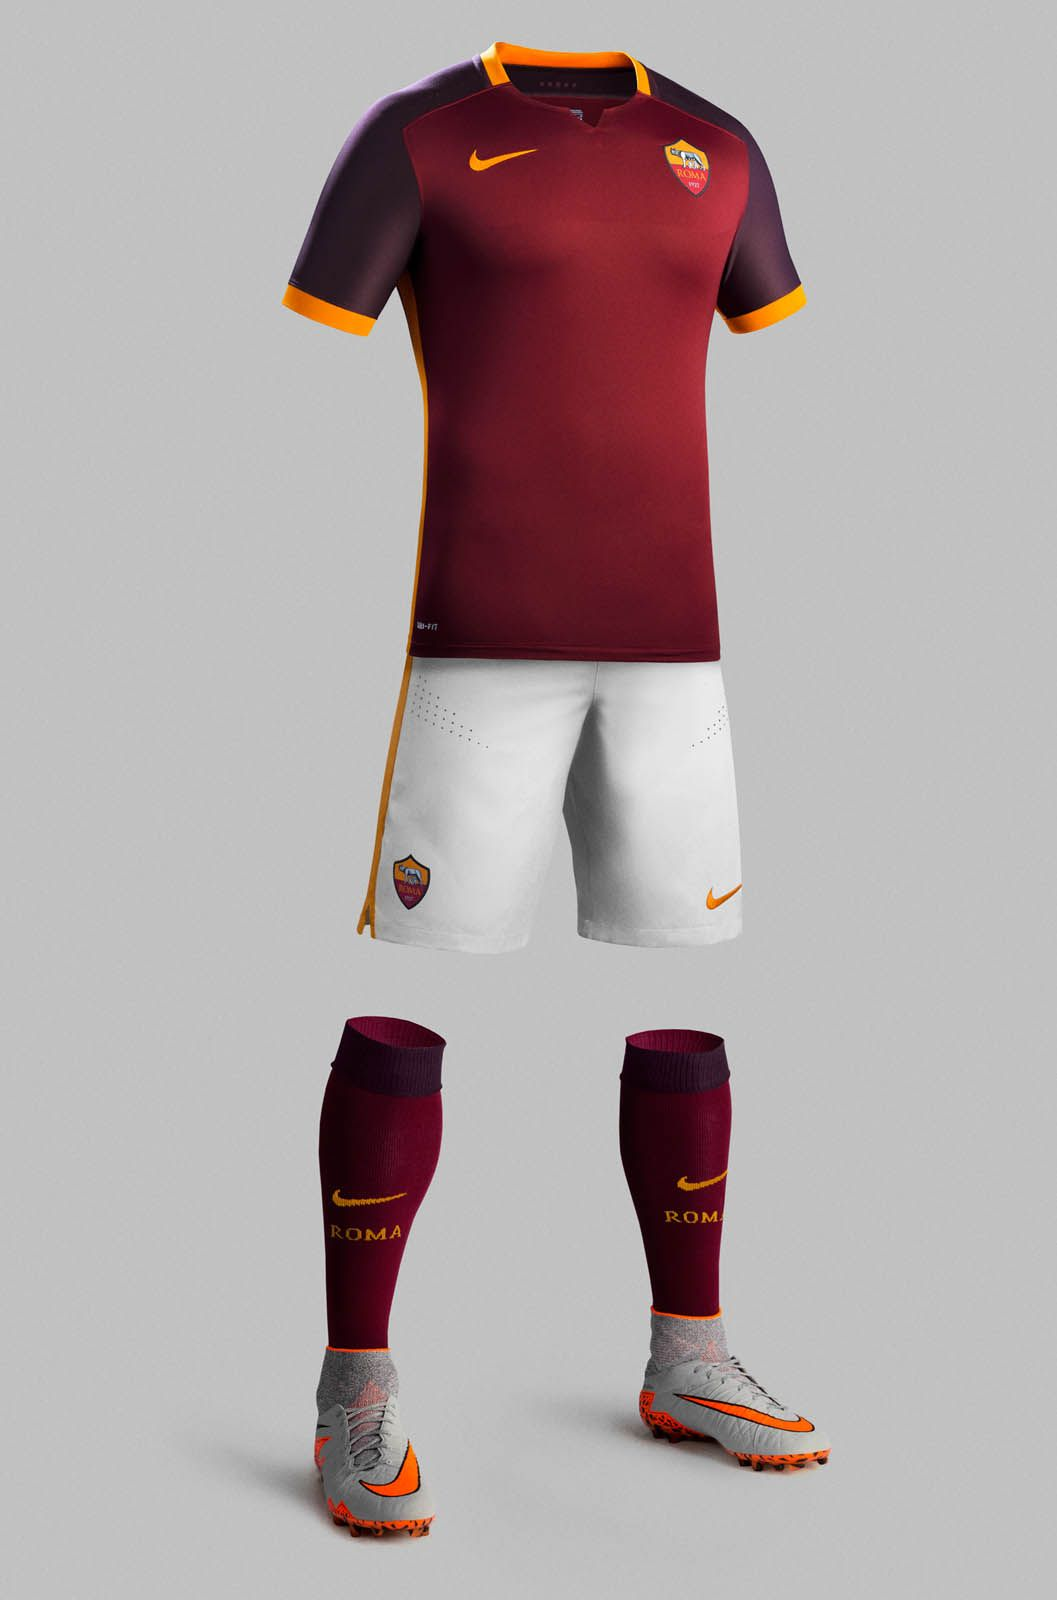 AS Roma 15-16 Kits Revealed - Footy Headlines Uniformes De Futbol 5f3ceaf3cdda6